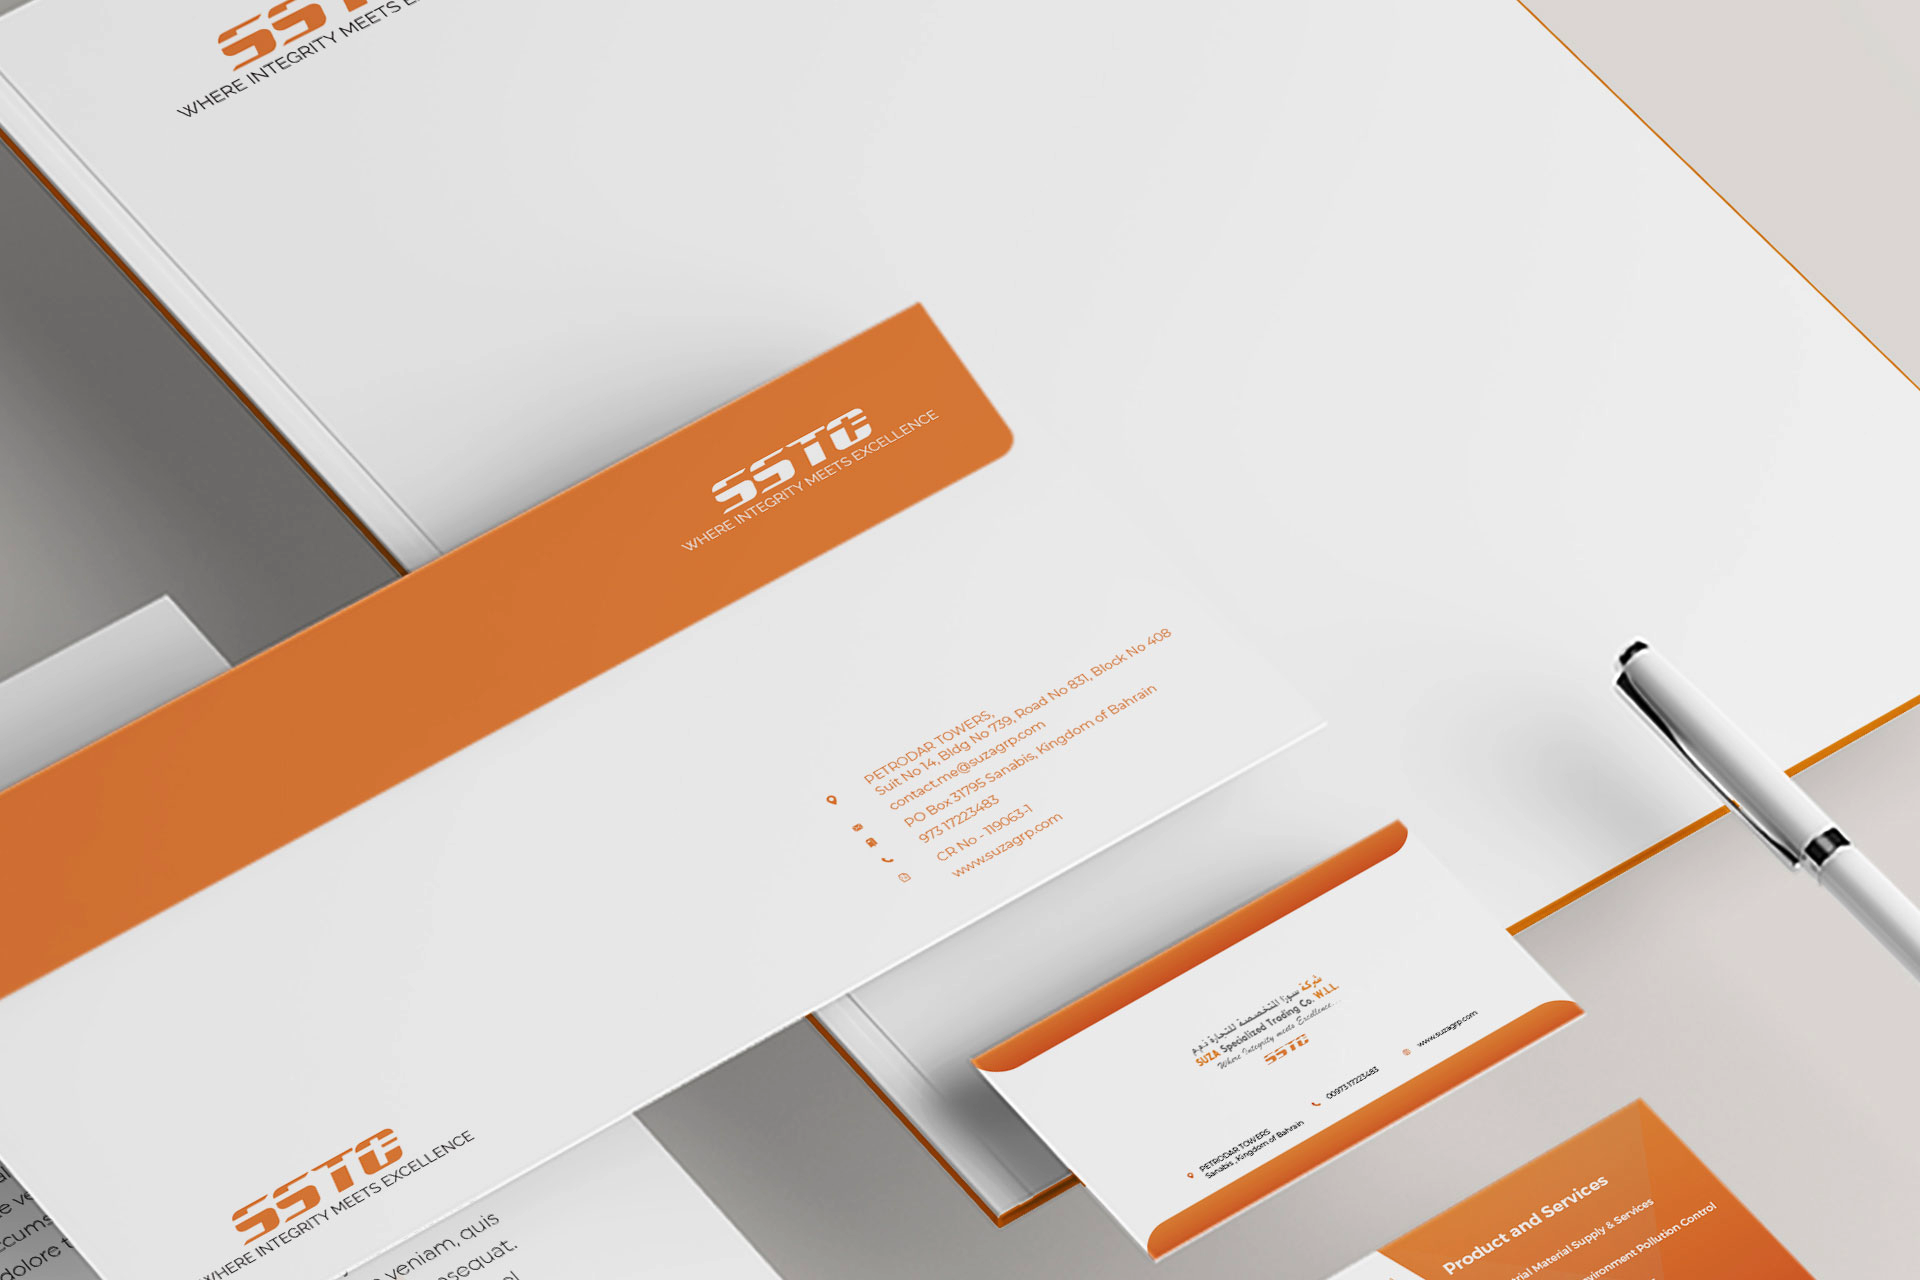 Stationery design mockup ideas. Logo design agency. Orange border Envelope. Visiting card. Branding. Get Solutions